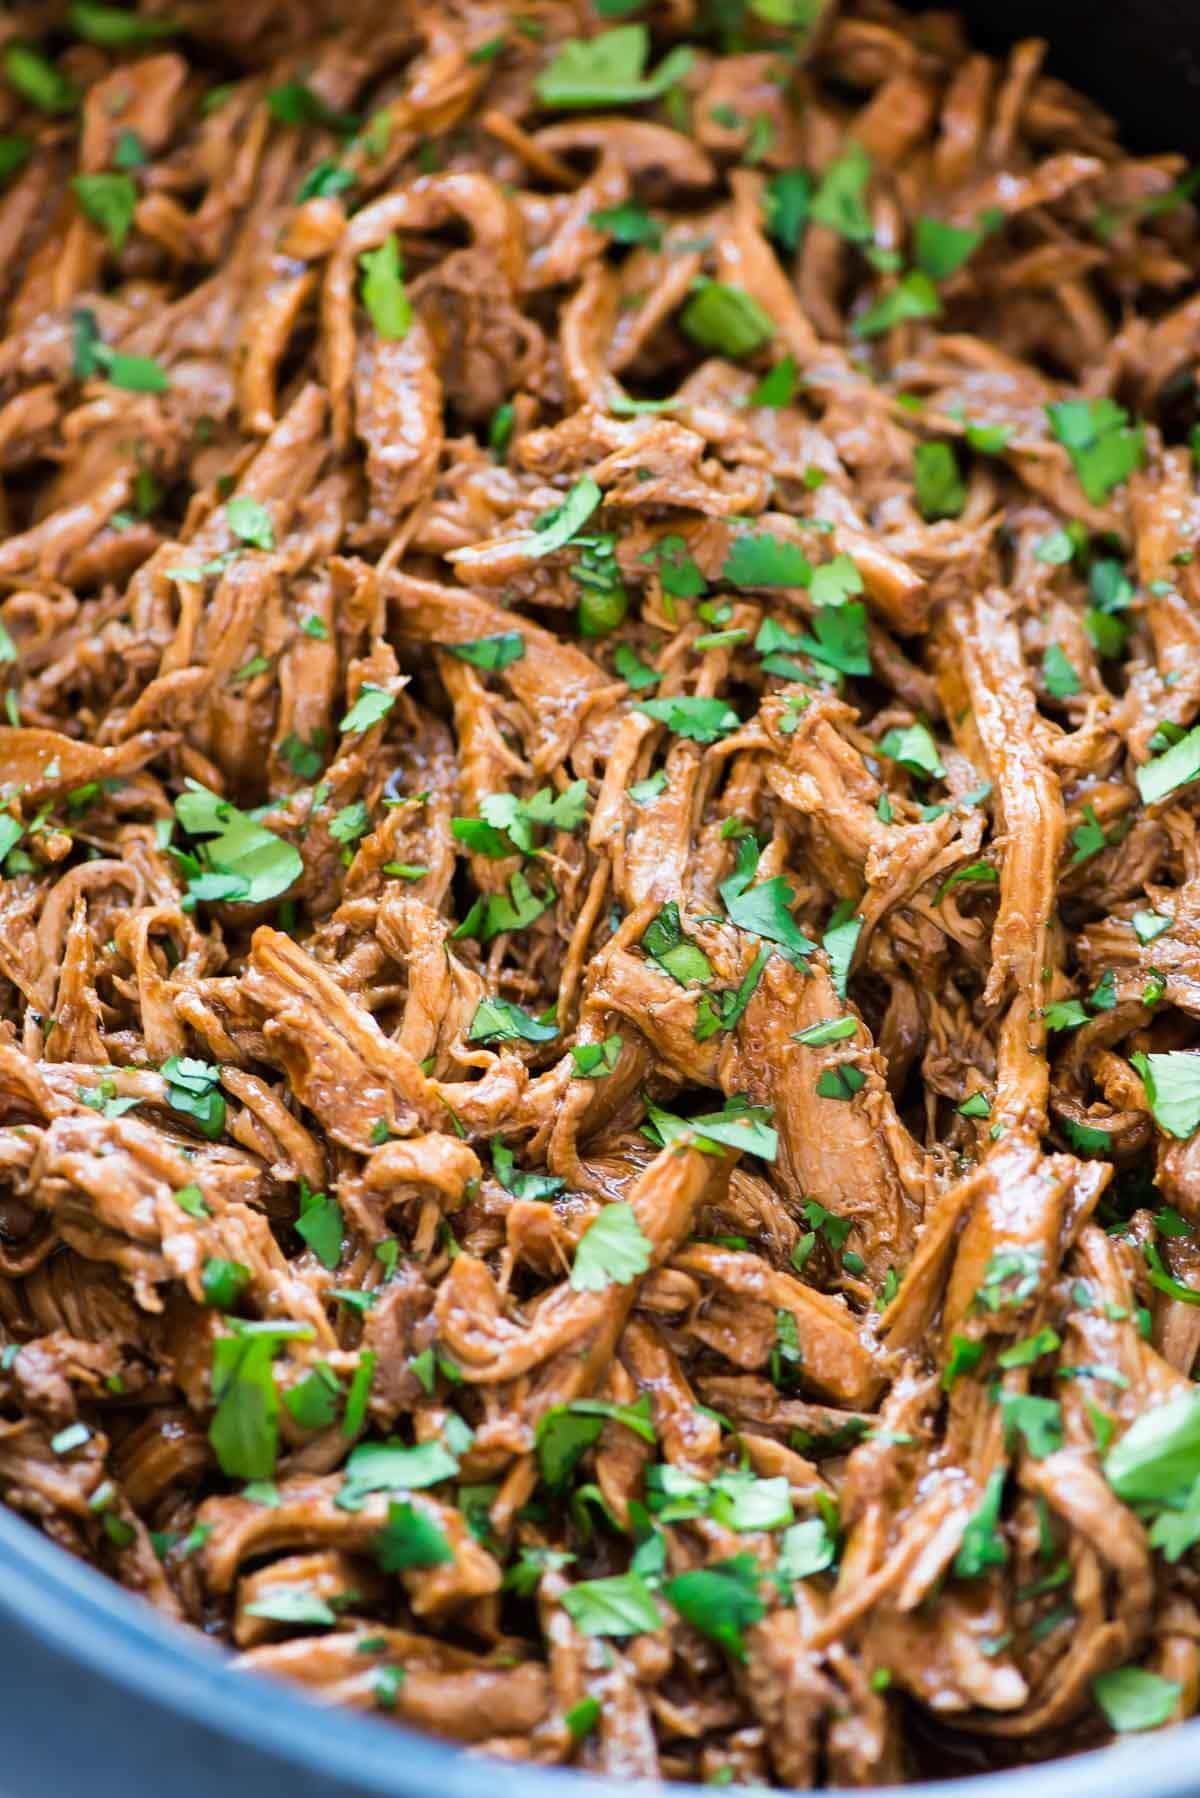 Asian-style shredded pork made in a crockpot